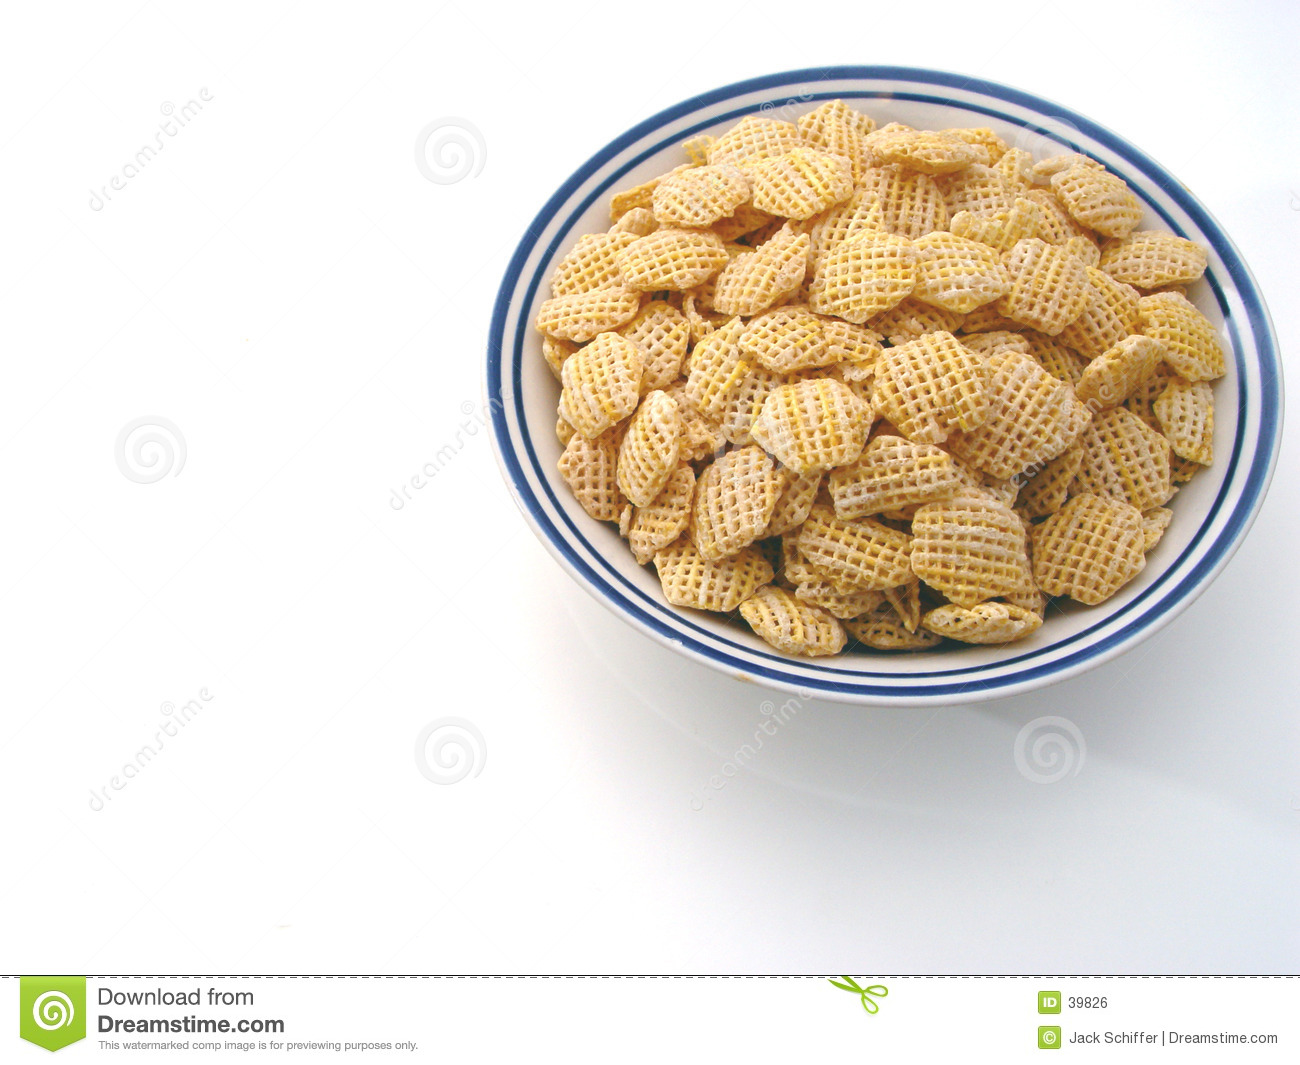 Cereal liso